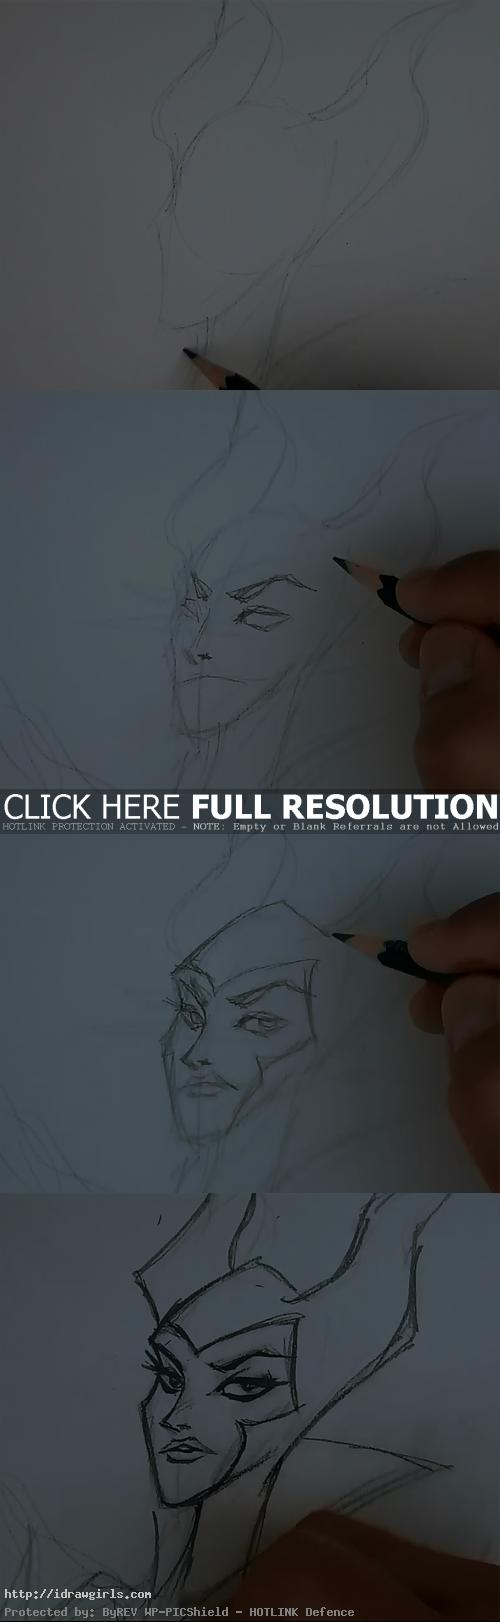 how to draw maleficent How to draw Maleficent